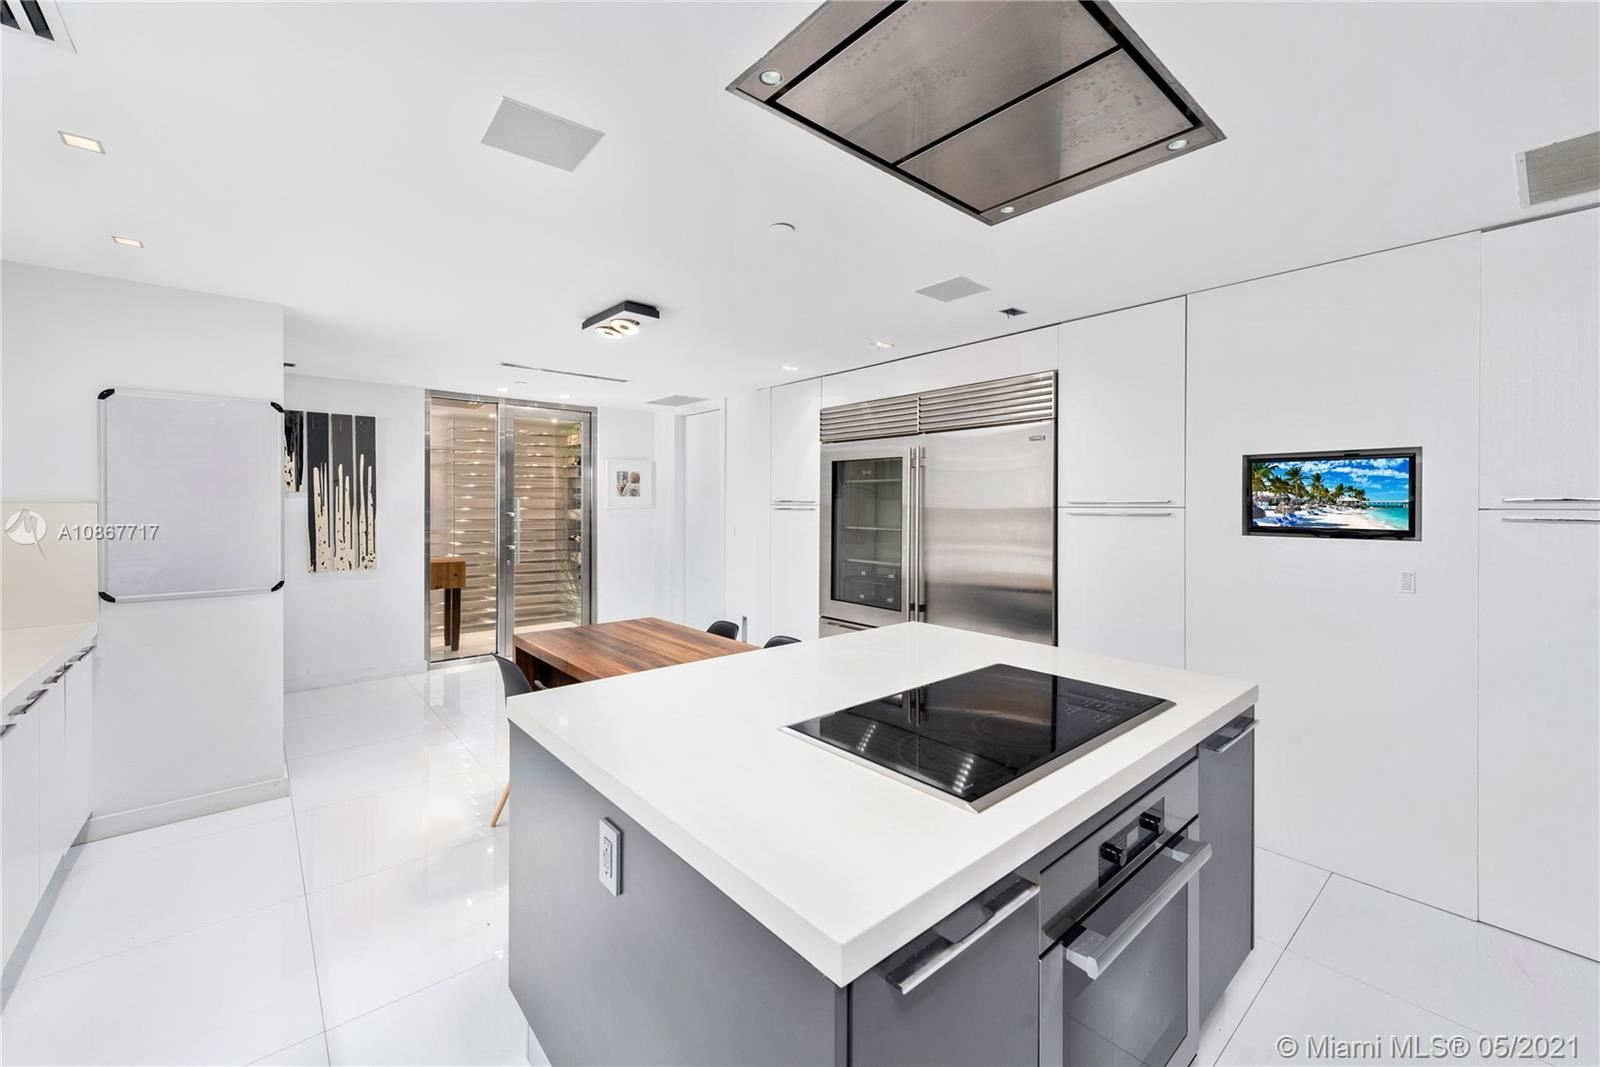 Photo 24 of Listing MLS a10867717 in 7716 FISHER ISLAND DR #7716 Miami FL 33109